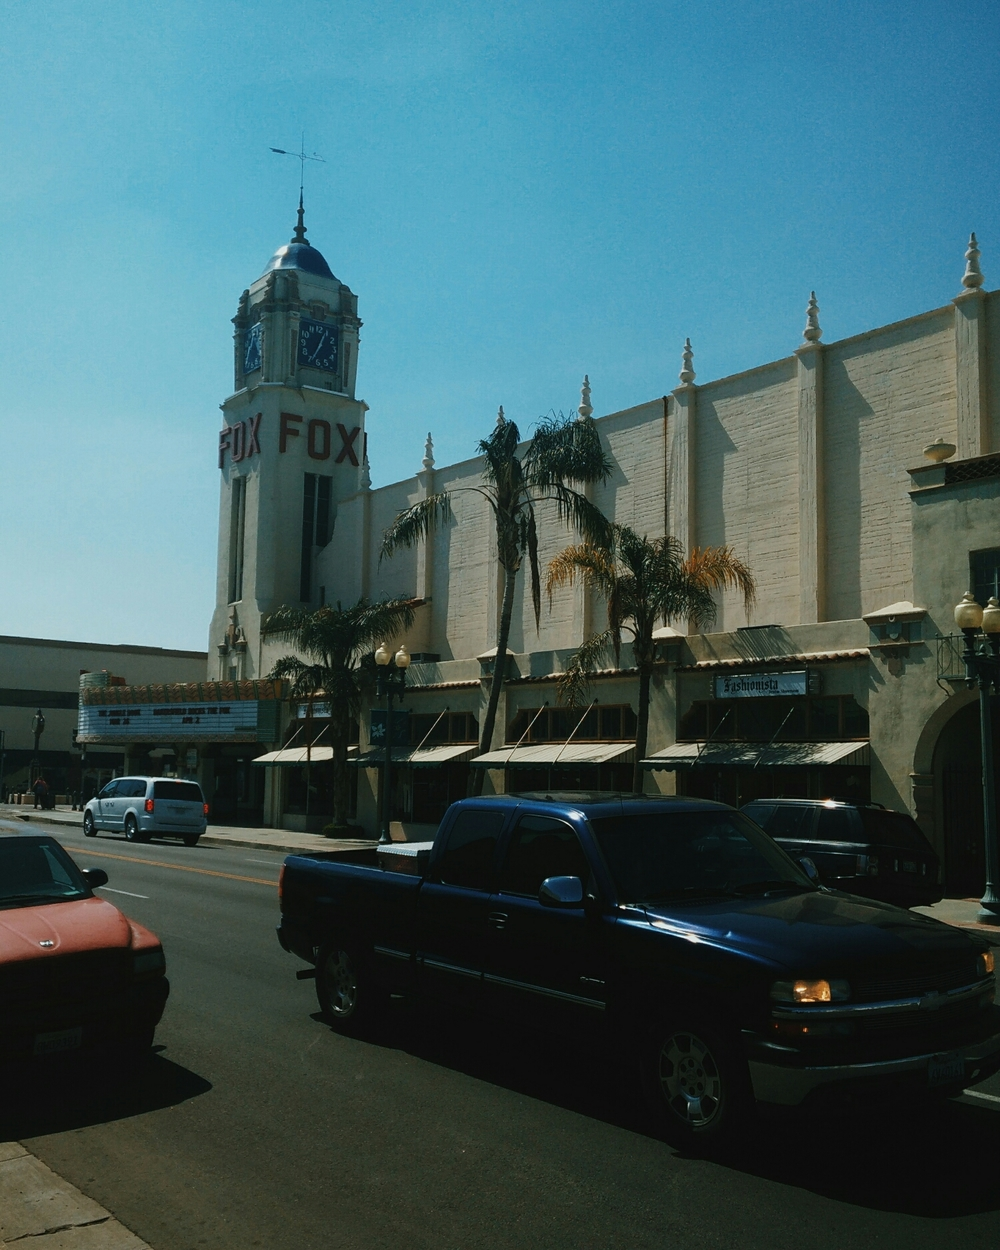 the Fox Theatre in Bakersfield where we played at. Dopeness